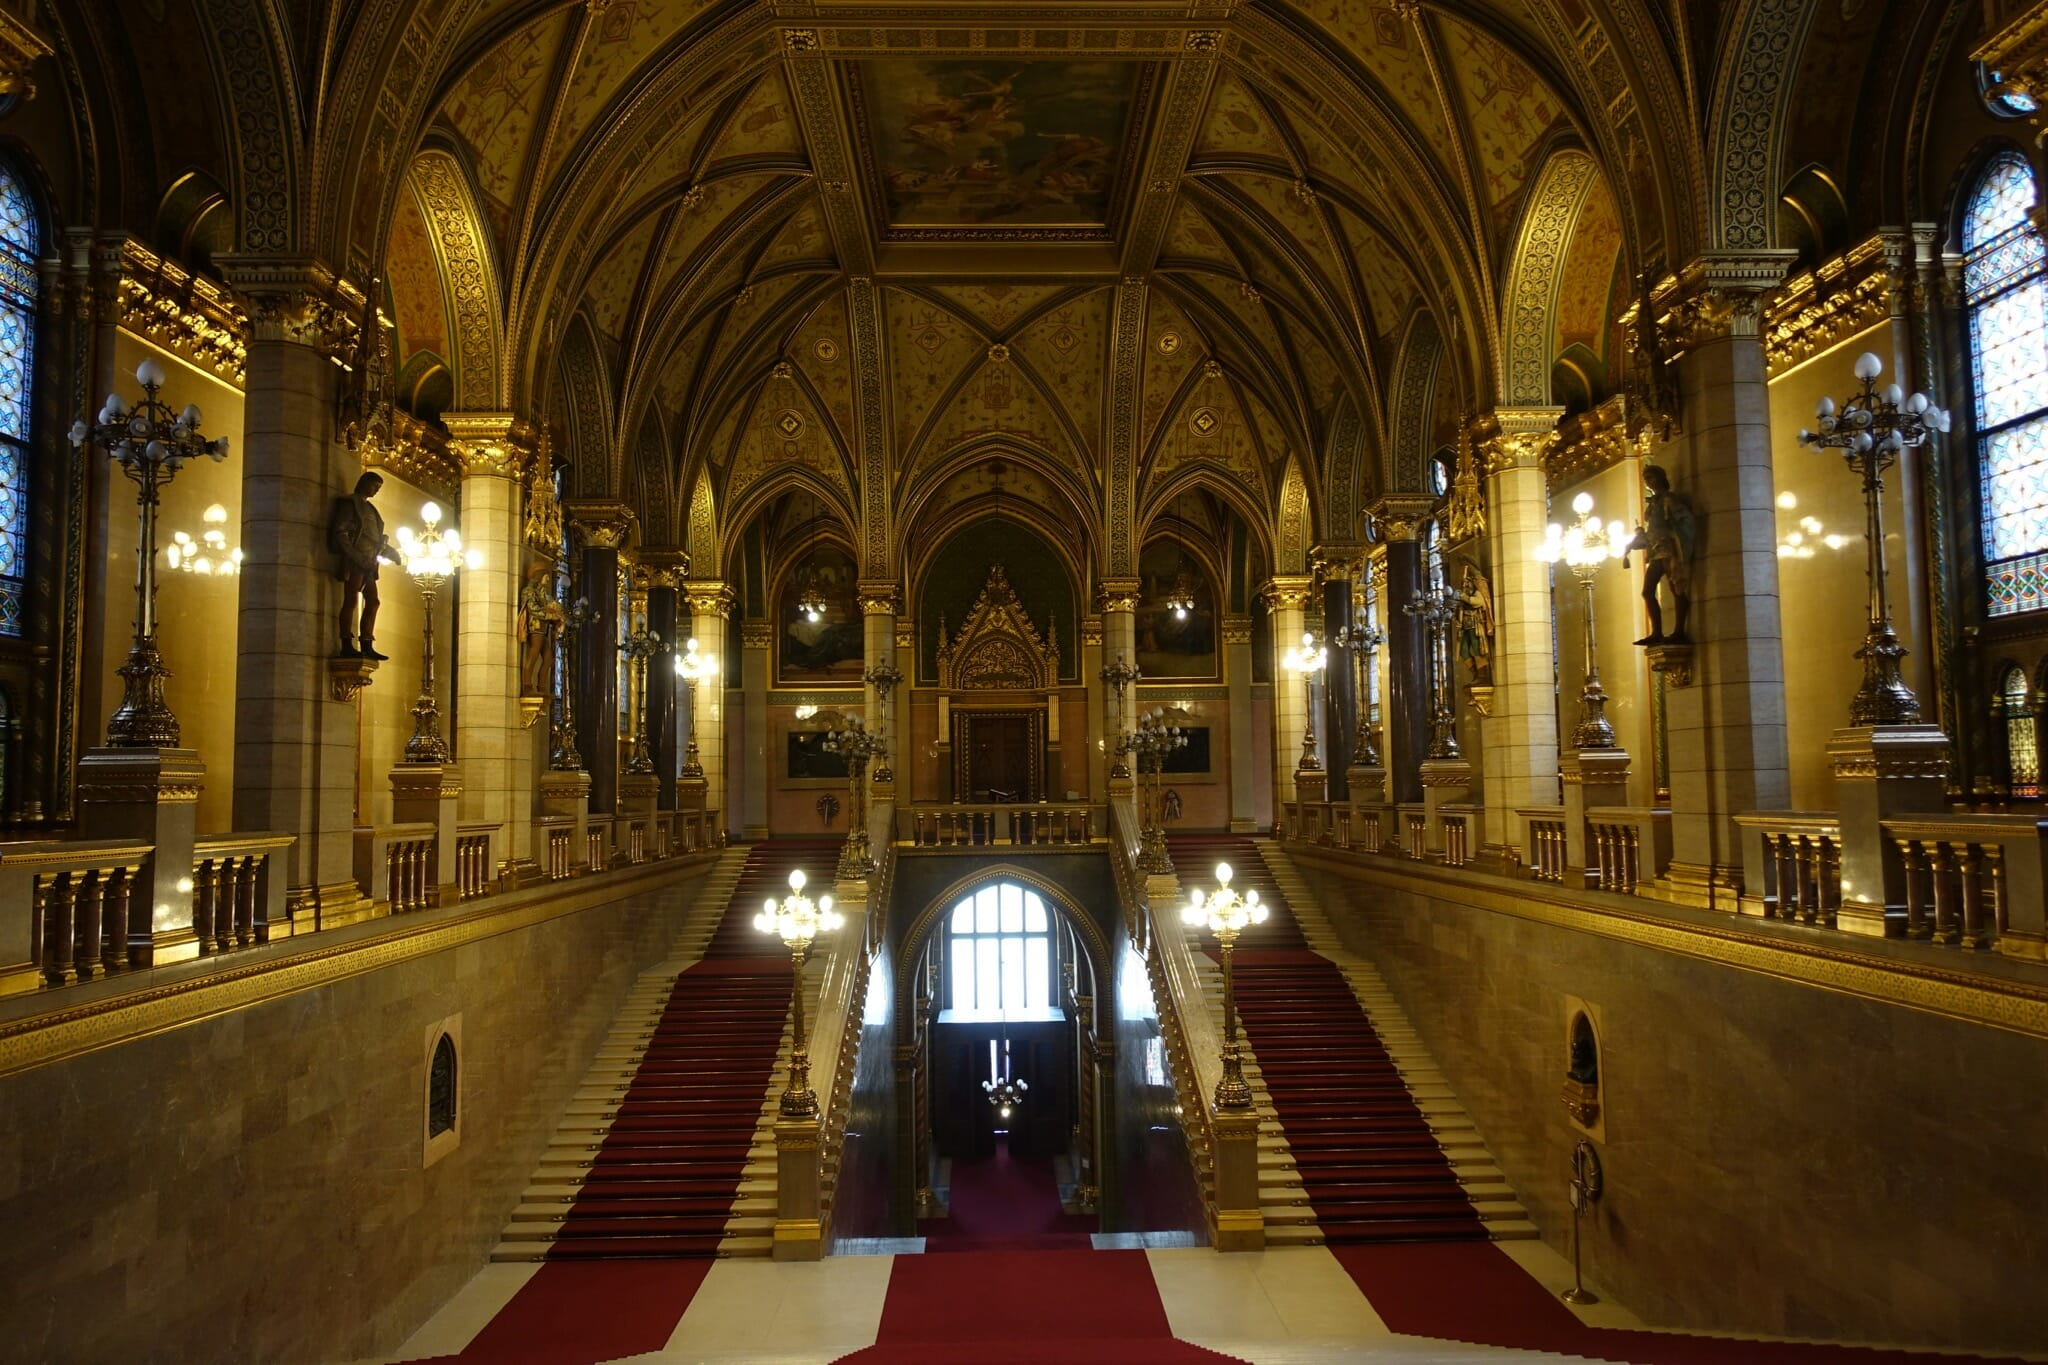 Grand Staircase in the Parliament Building